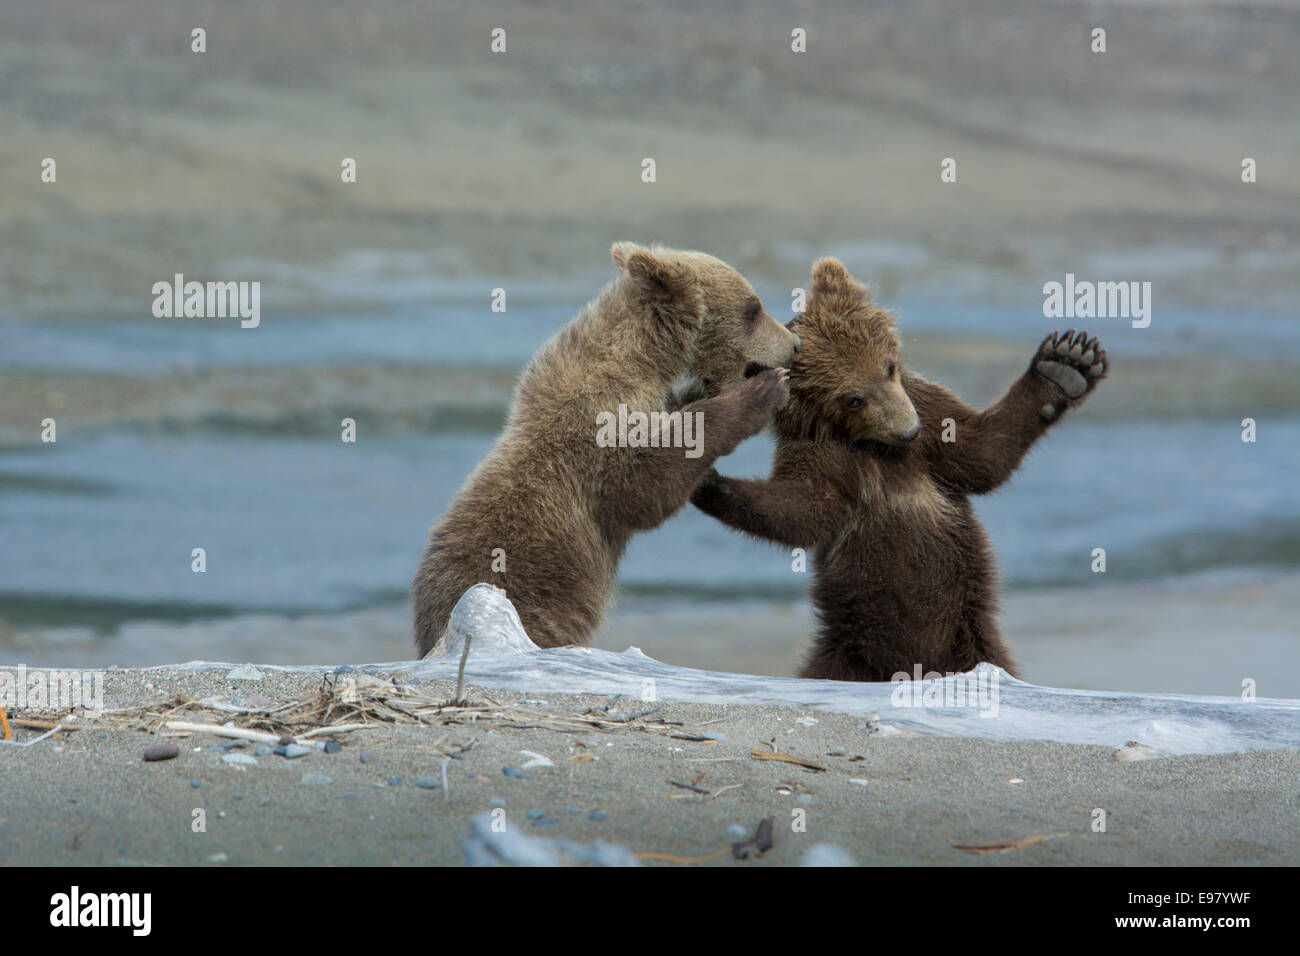 Two Grizzly Bear Spring Cubs, Ursus arctos, playing, with the appearance of whispering a secret, Cook Inlet, Alaska, - Stock Image